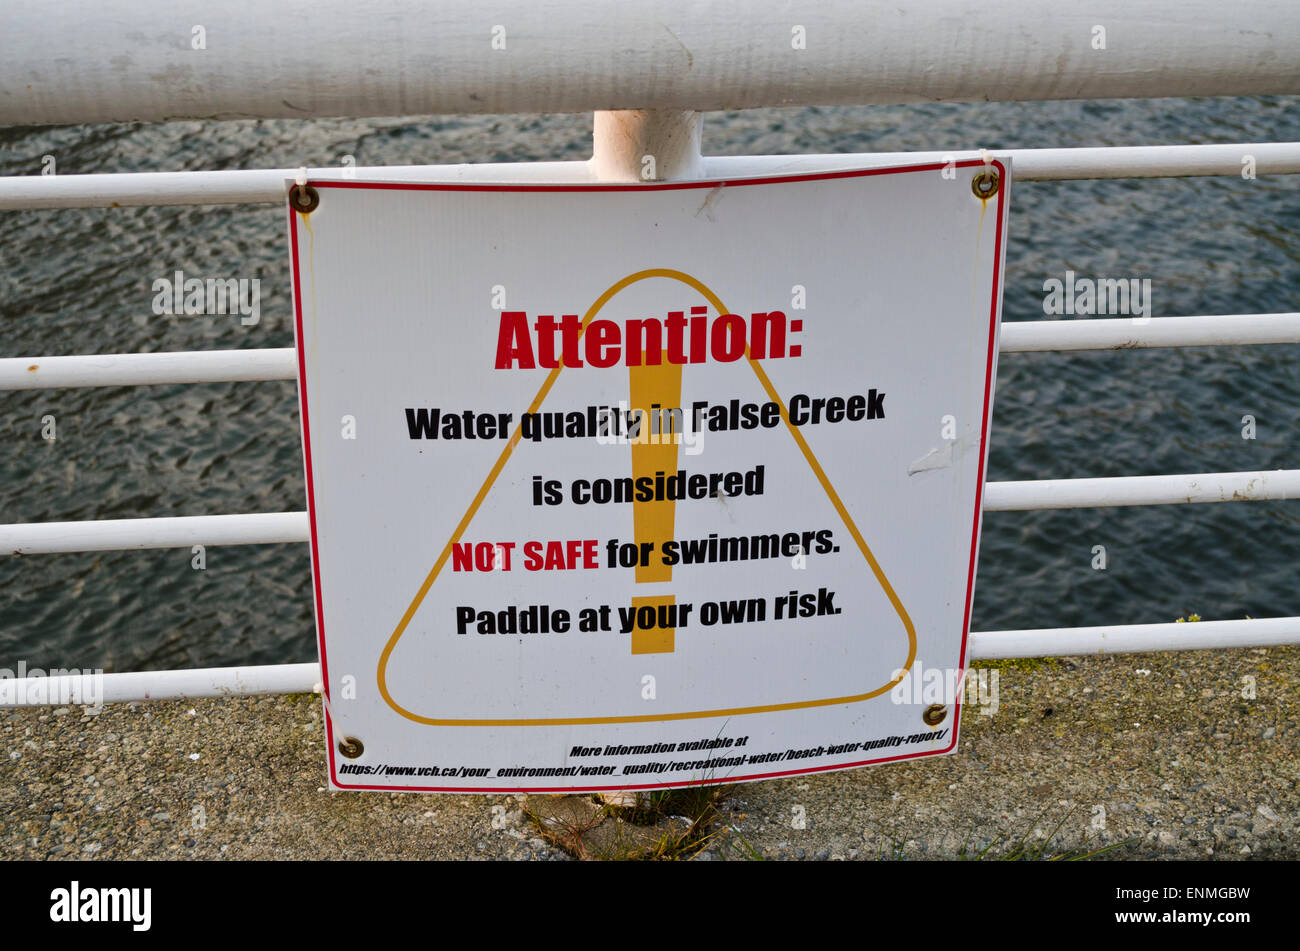 A sign warning it is not safe for swimming in the waters of False Creek in Vancouver.  Paddlers / rowers are also - Stock Image